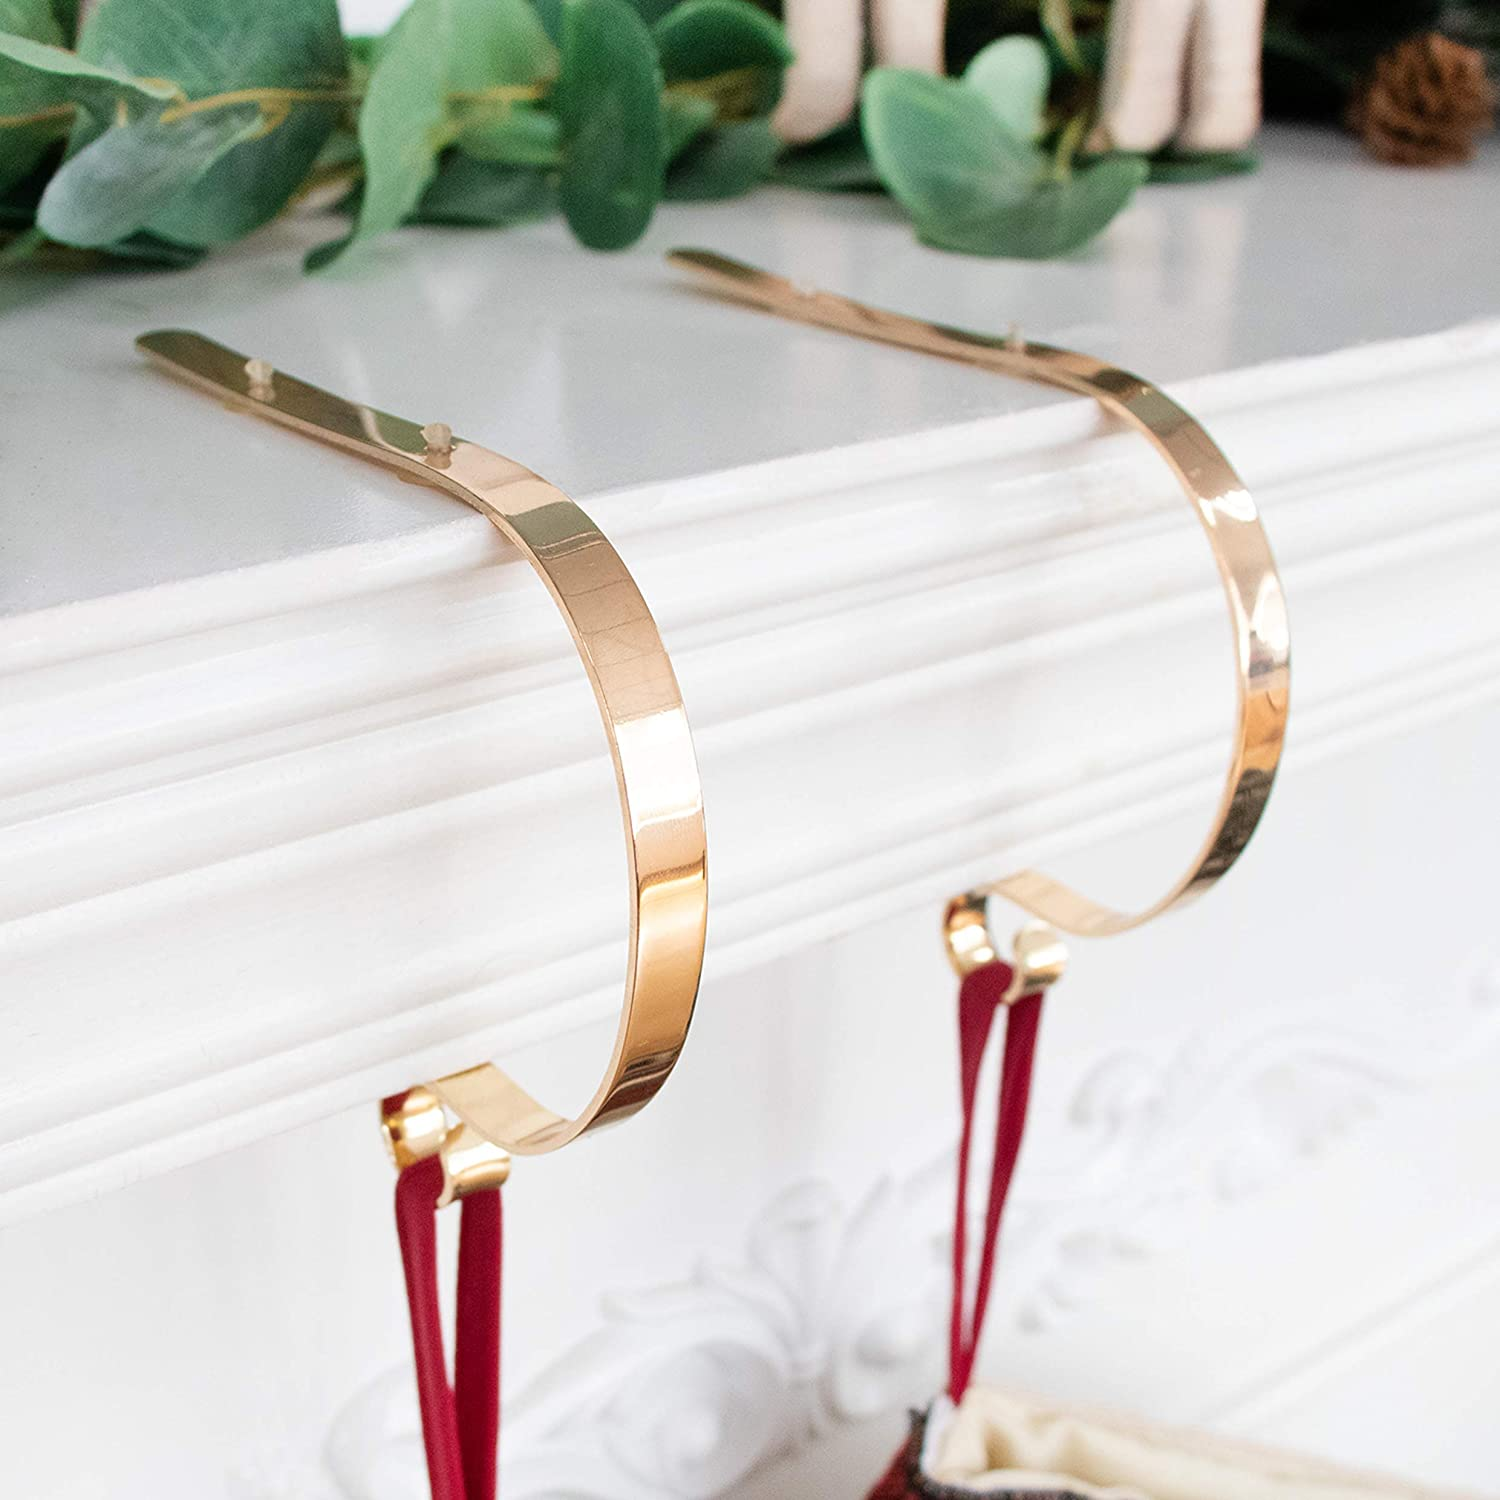 Beyond Your Thoughts Set of 2 Metal Christmas Stocking Holder Hooks Fireplace Hanger with Non-Skid Design Gold 2 Pack S